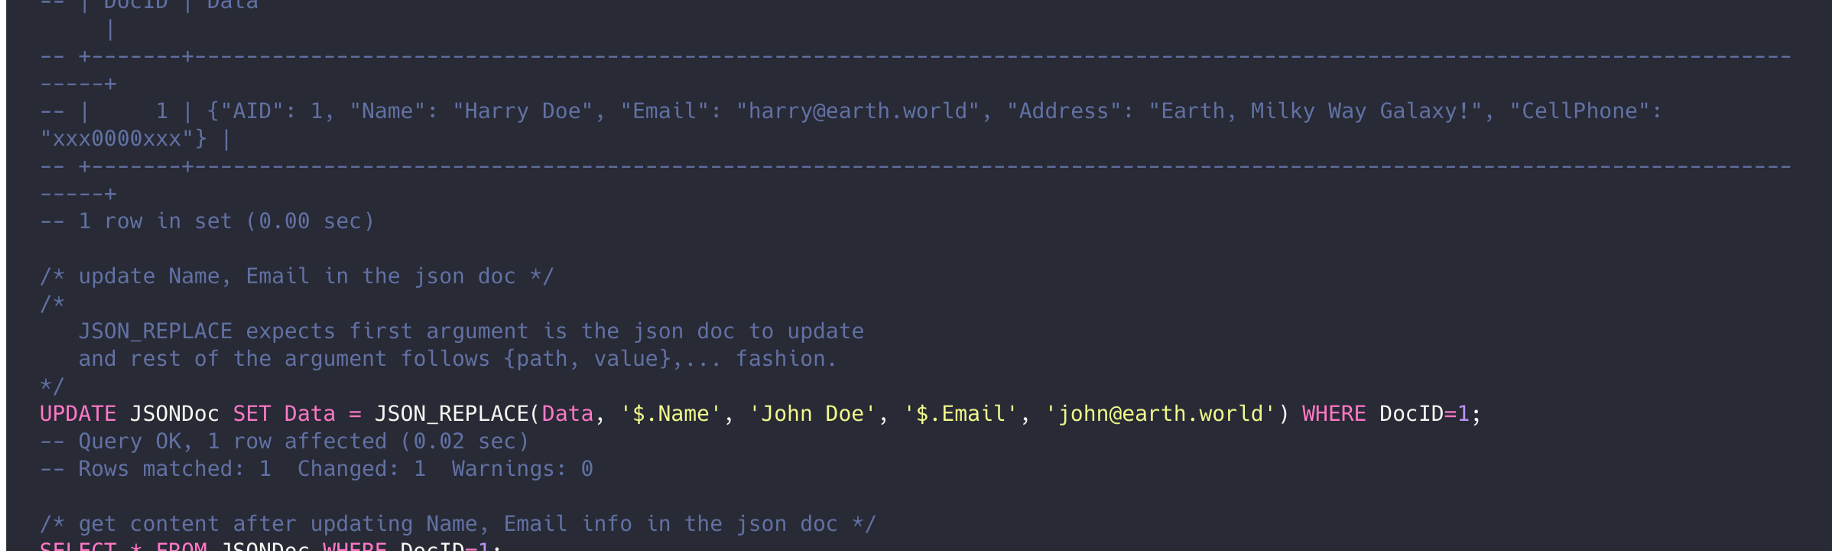 Working with MySQL JSON data type with prepared statements